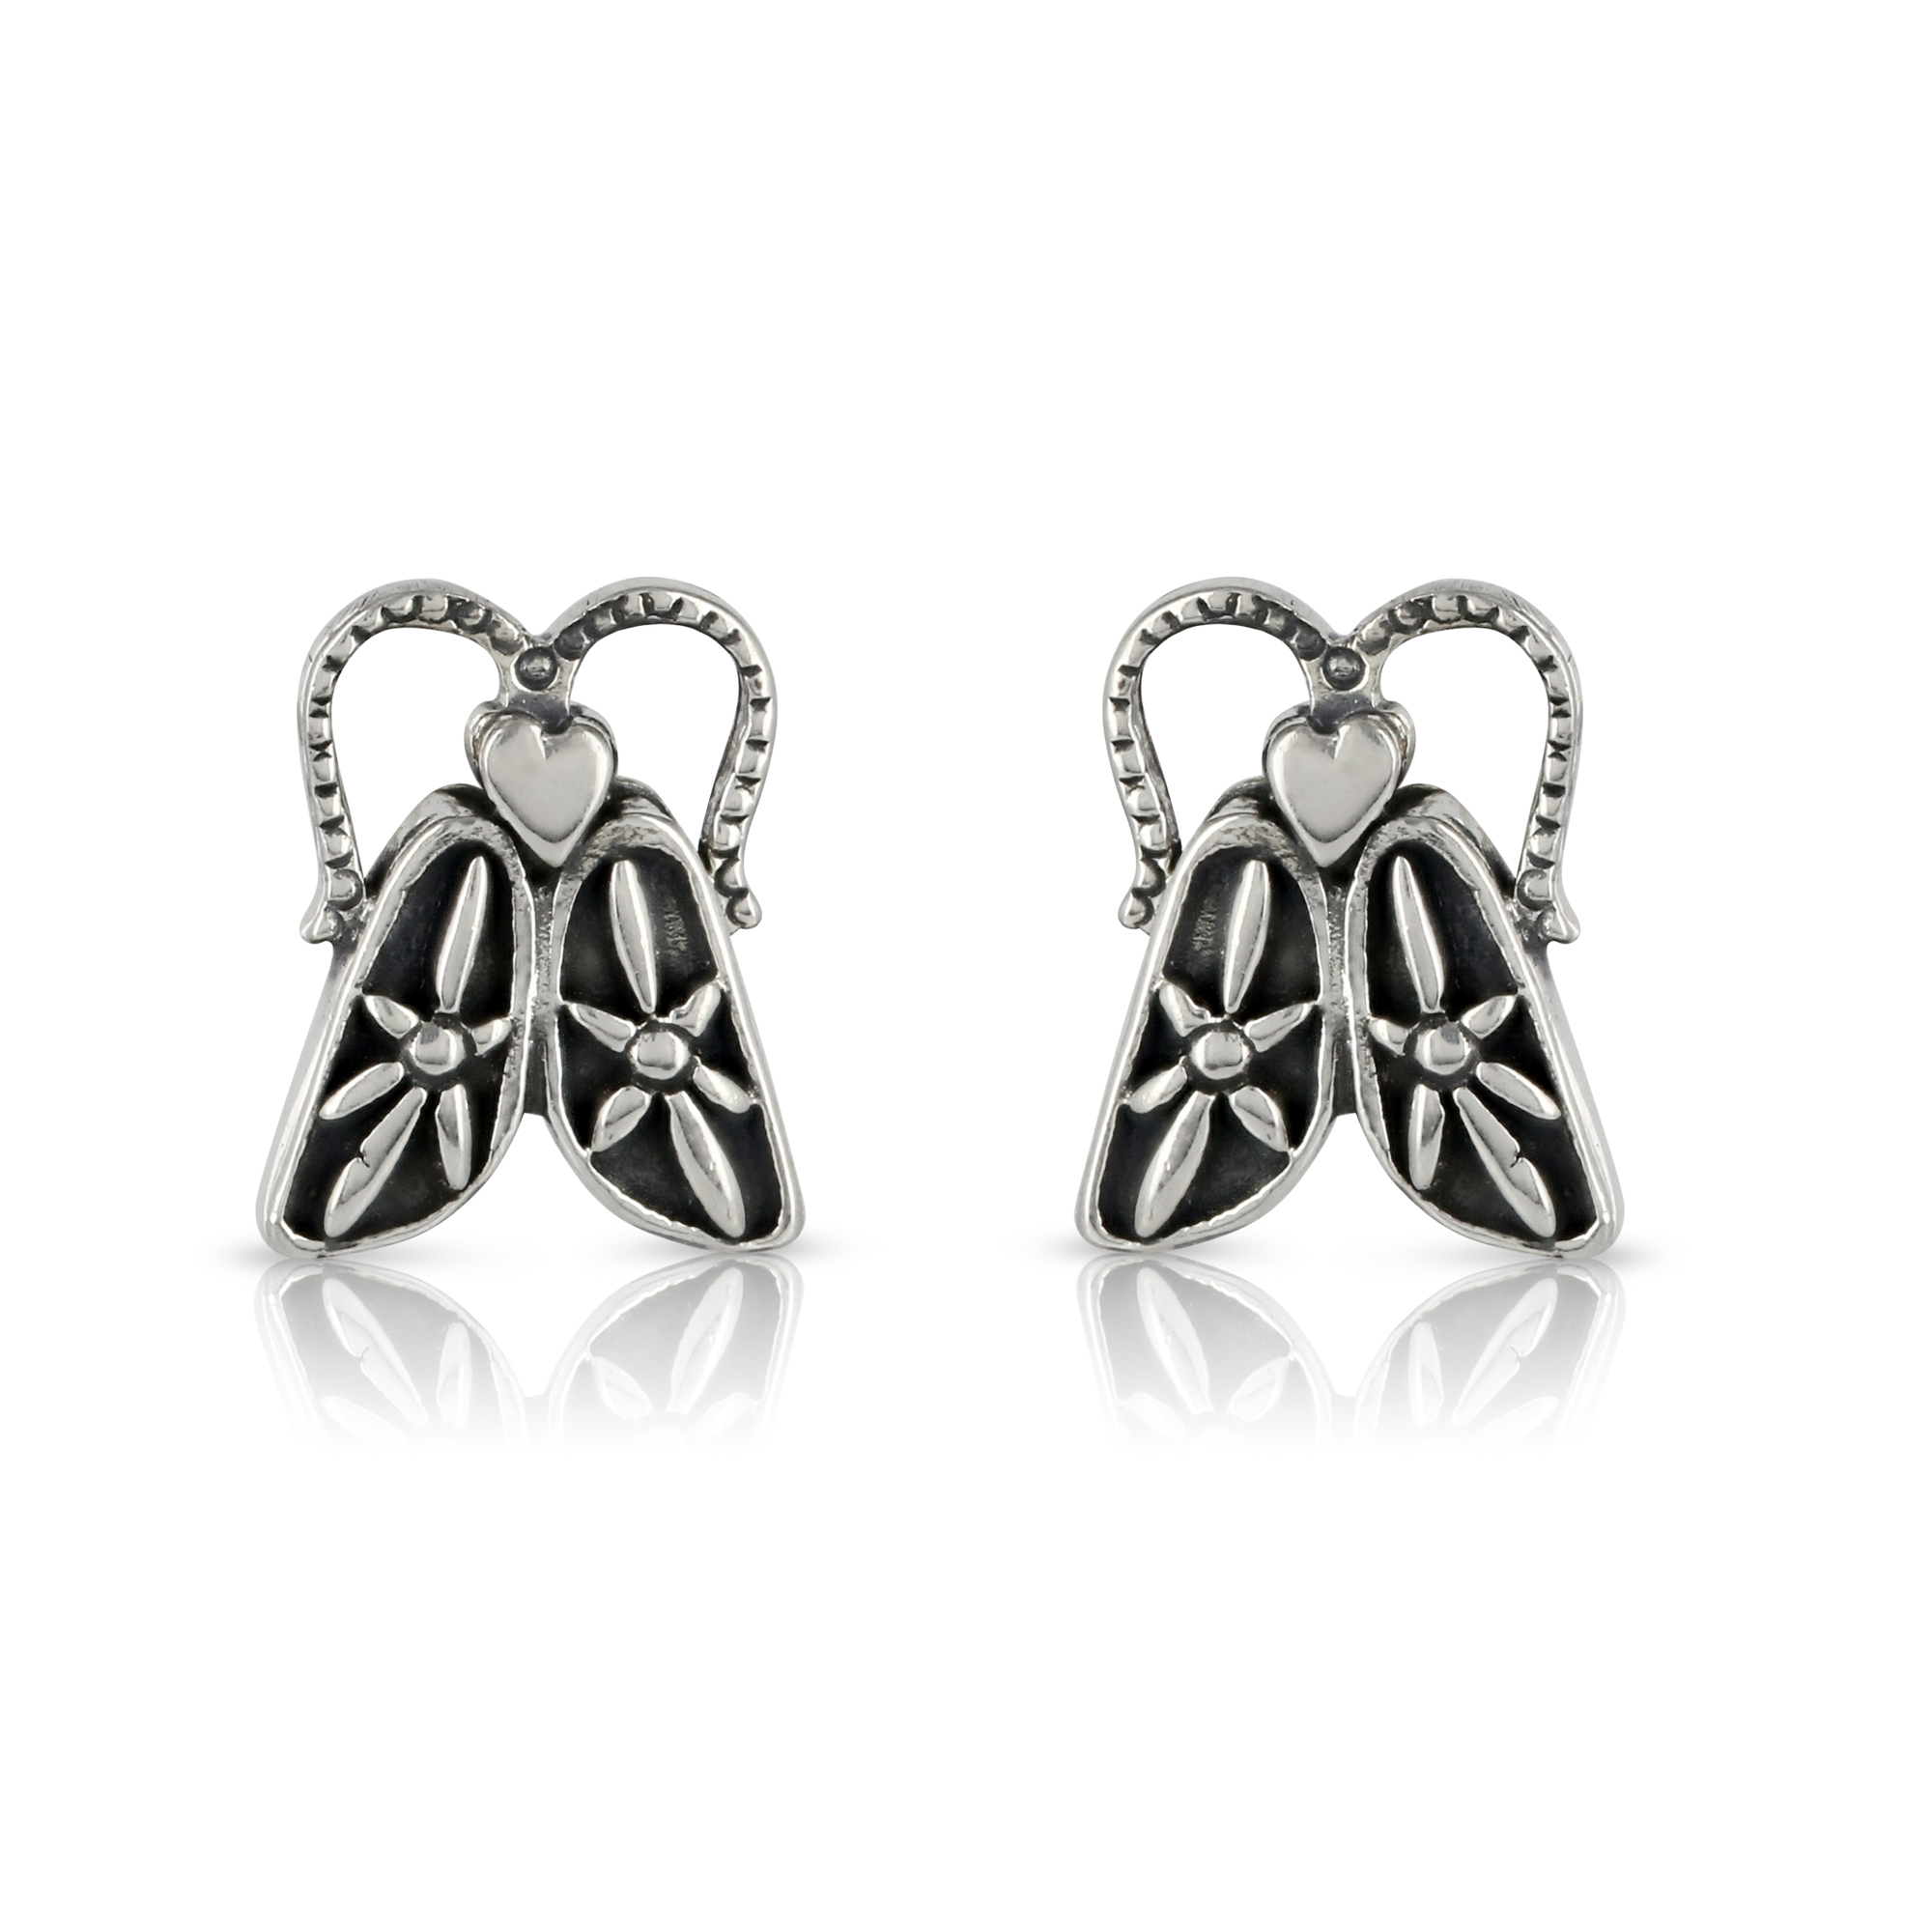 Silver Bug Stud Earrings by Prey Jewellery